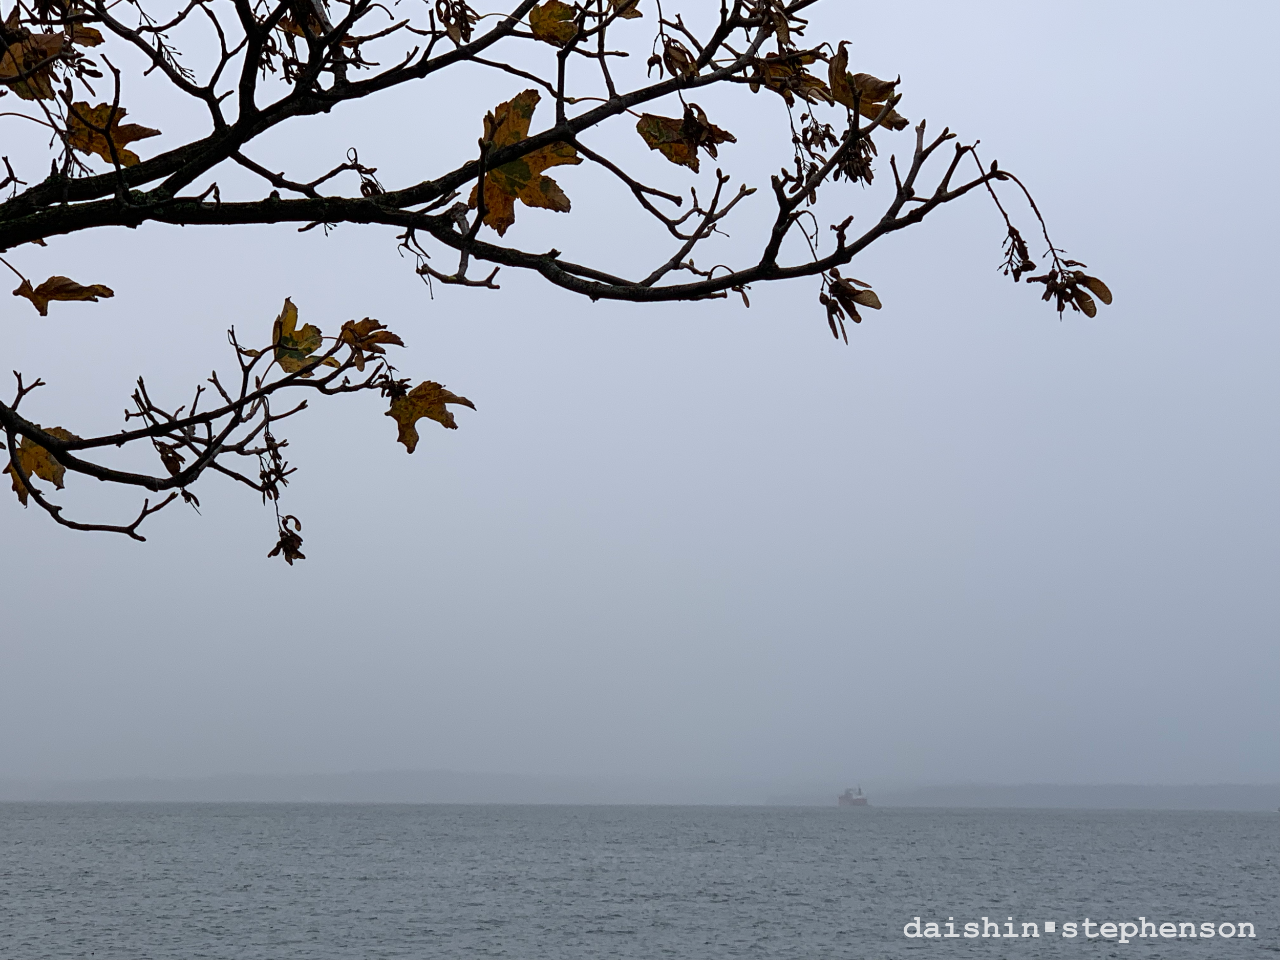 tree branch, freighter boat on the horizon line